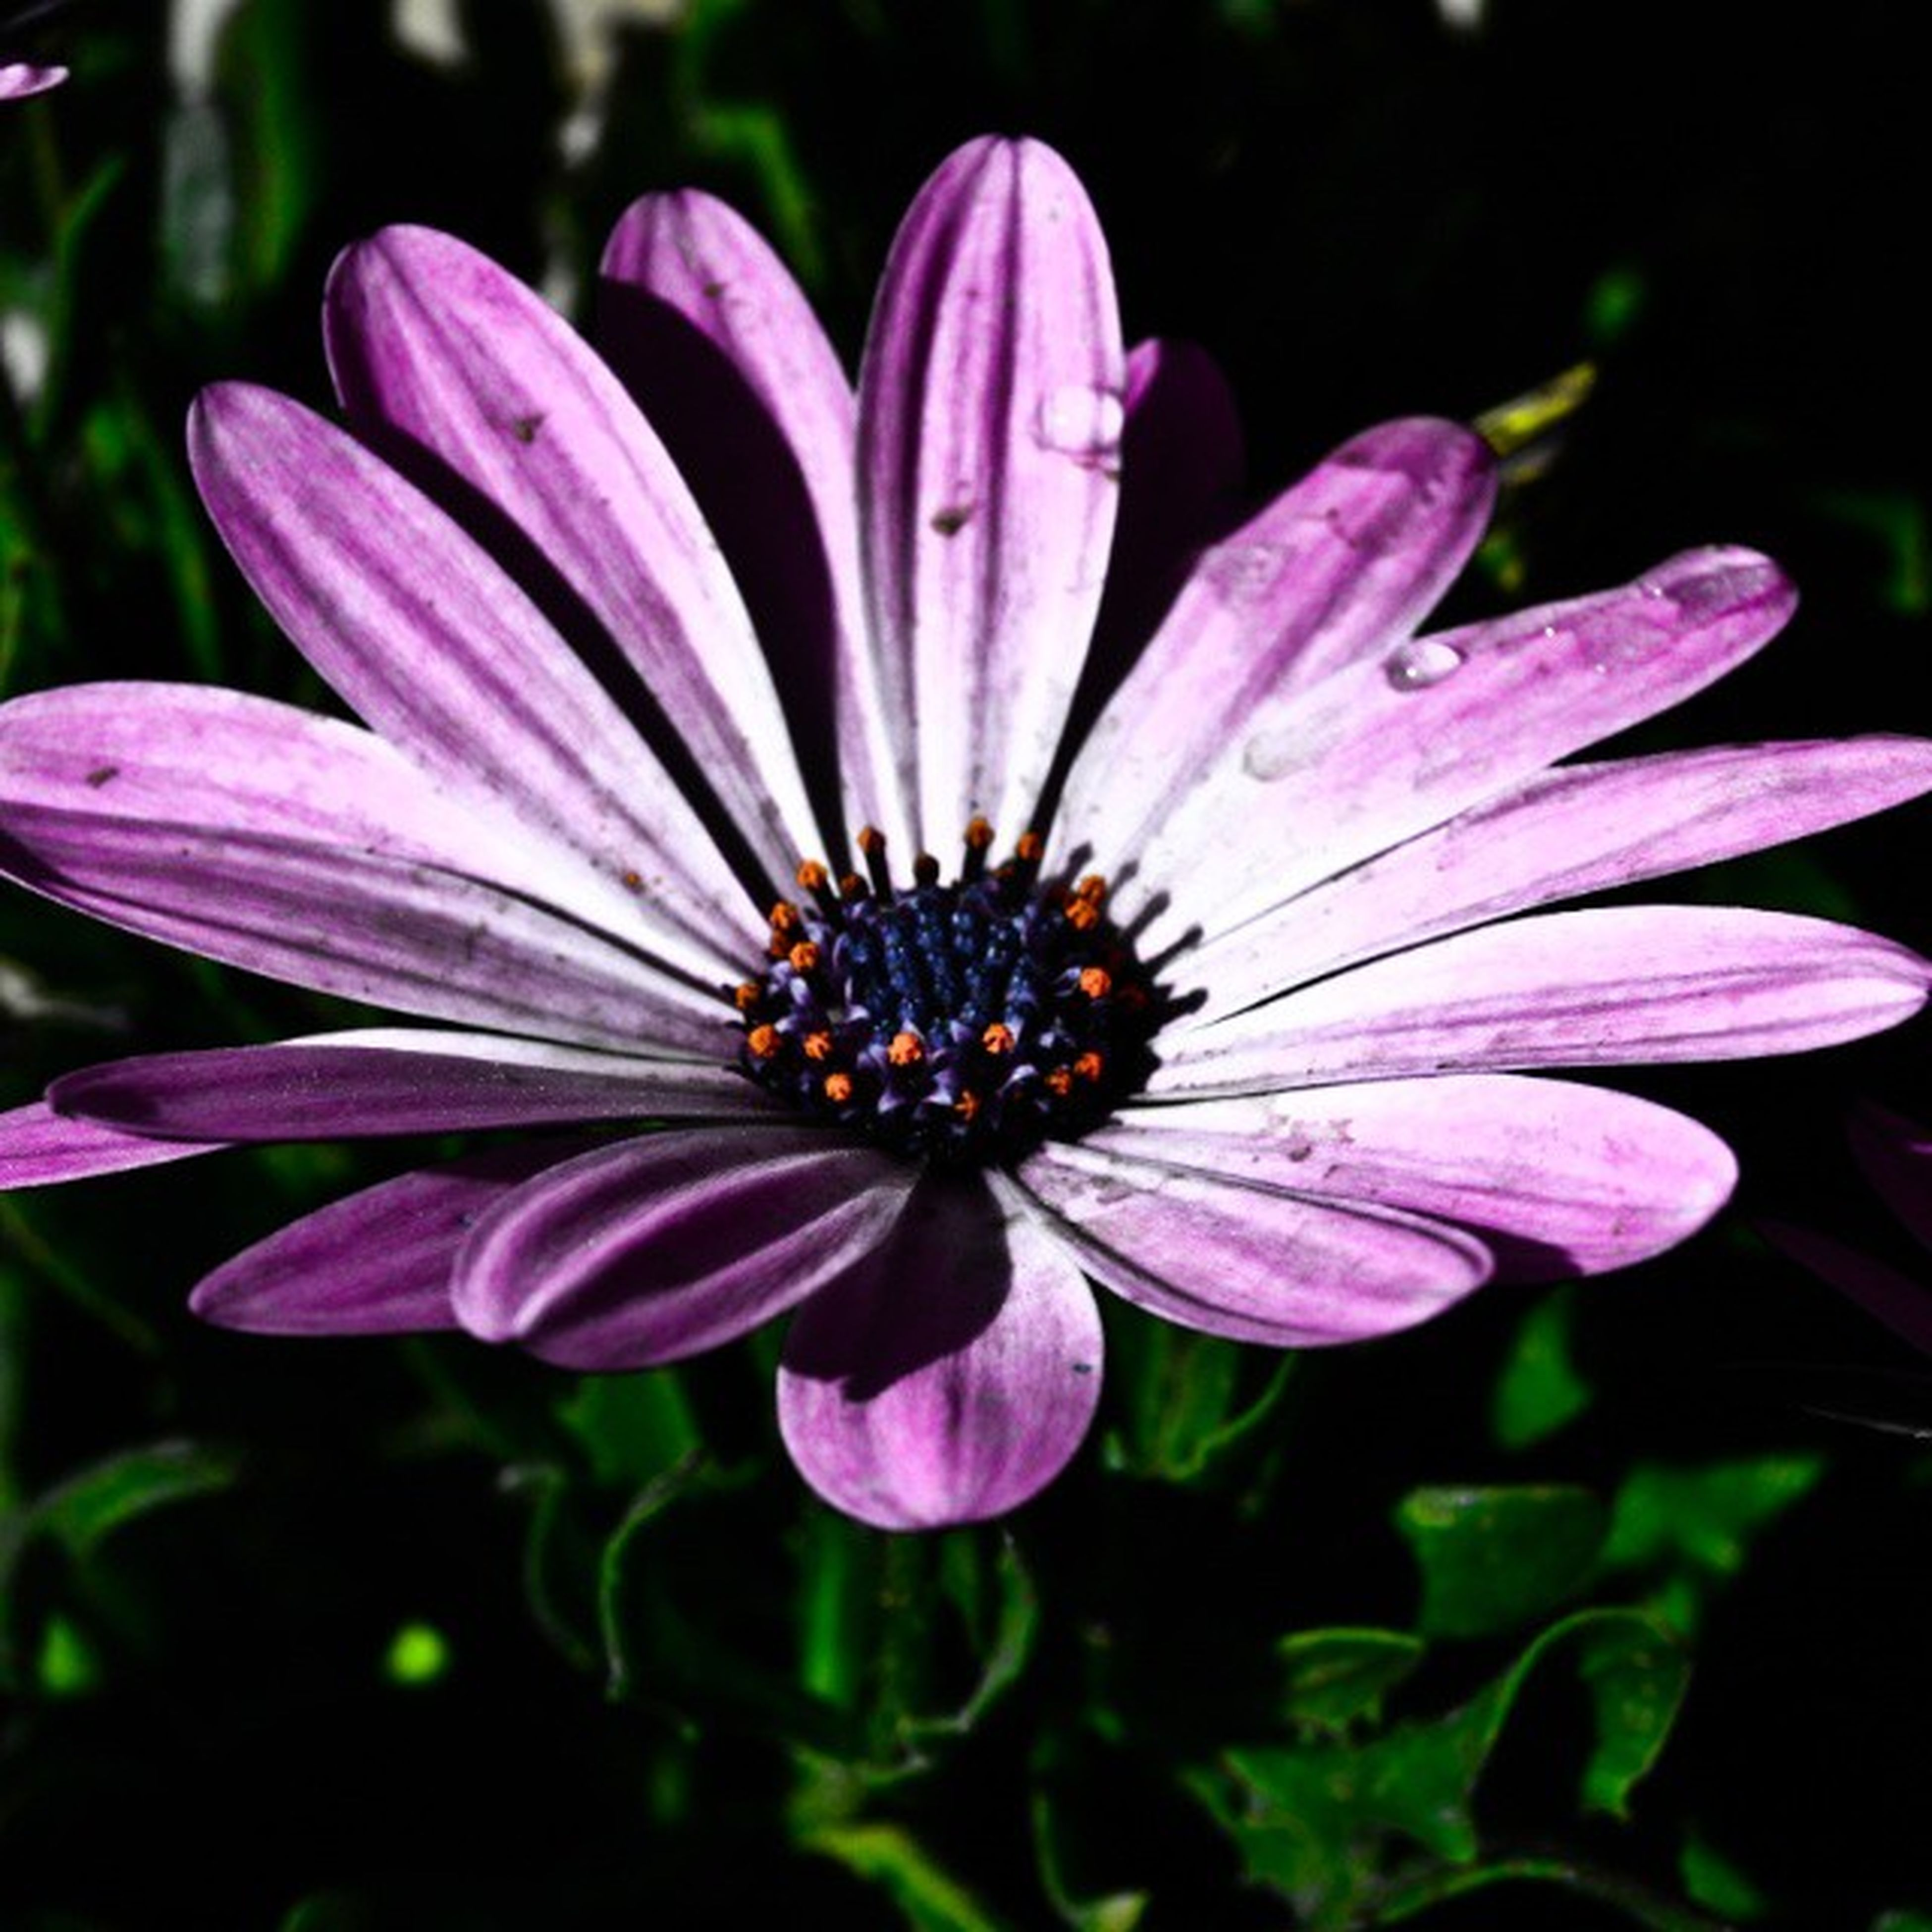 flower, petal, freshness, fragility, flower head, growth, beauty in nature, close-up, purple, pollen, blooming, nature, single flower, focus on foreground, plant, in bloom, stamen, pink color, outdoors, no people